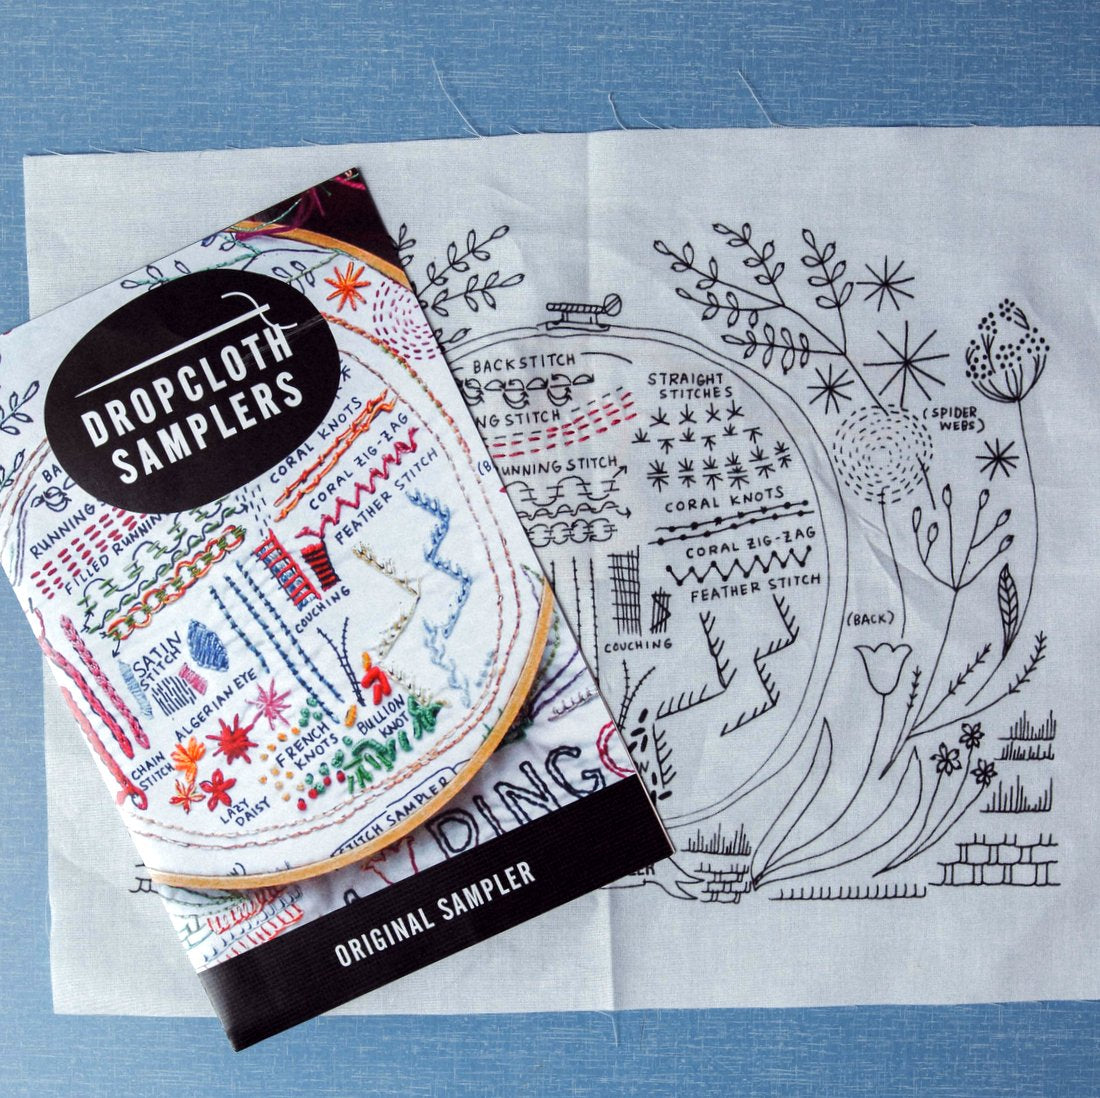 Dropcloth Sampler - The Original